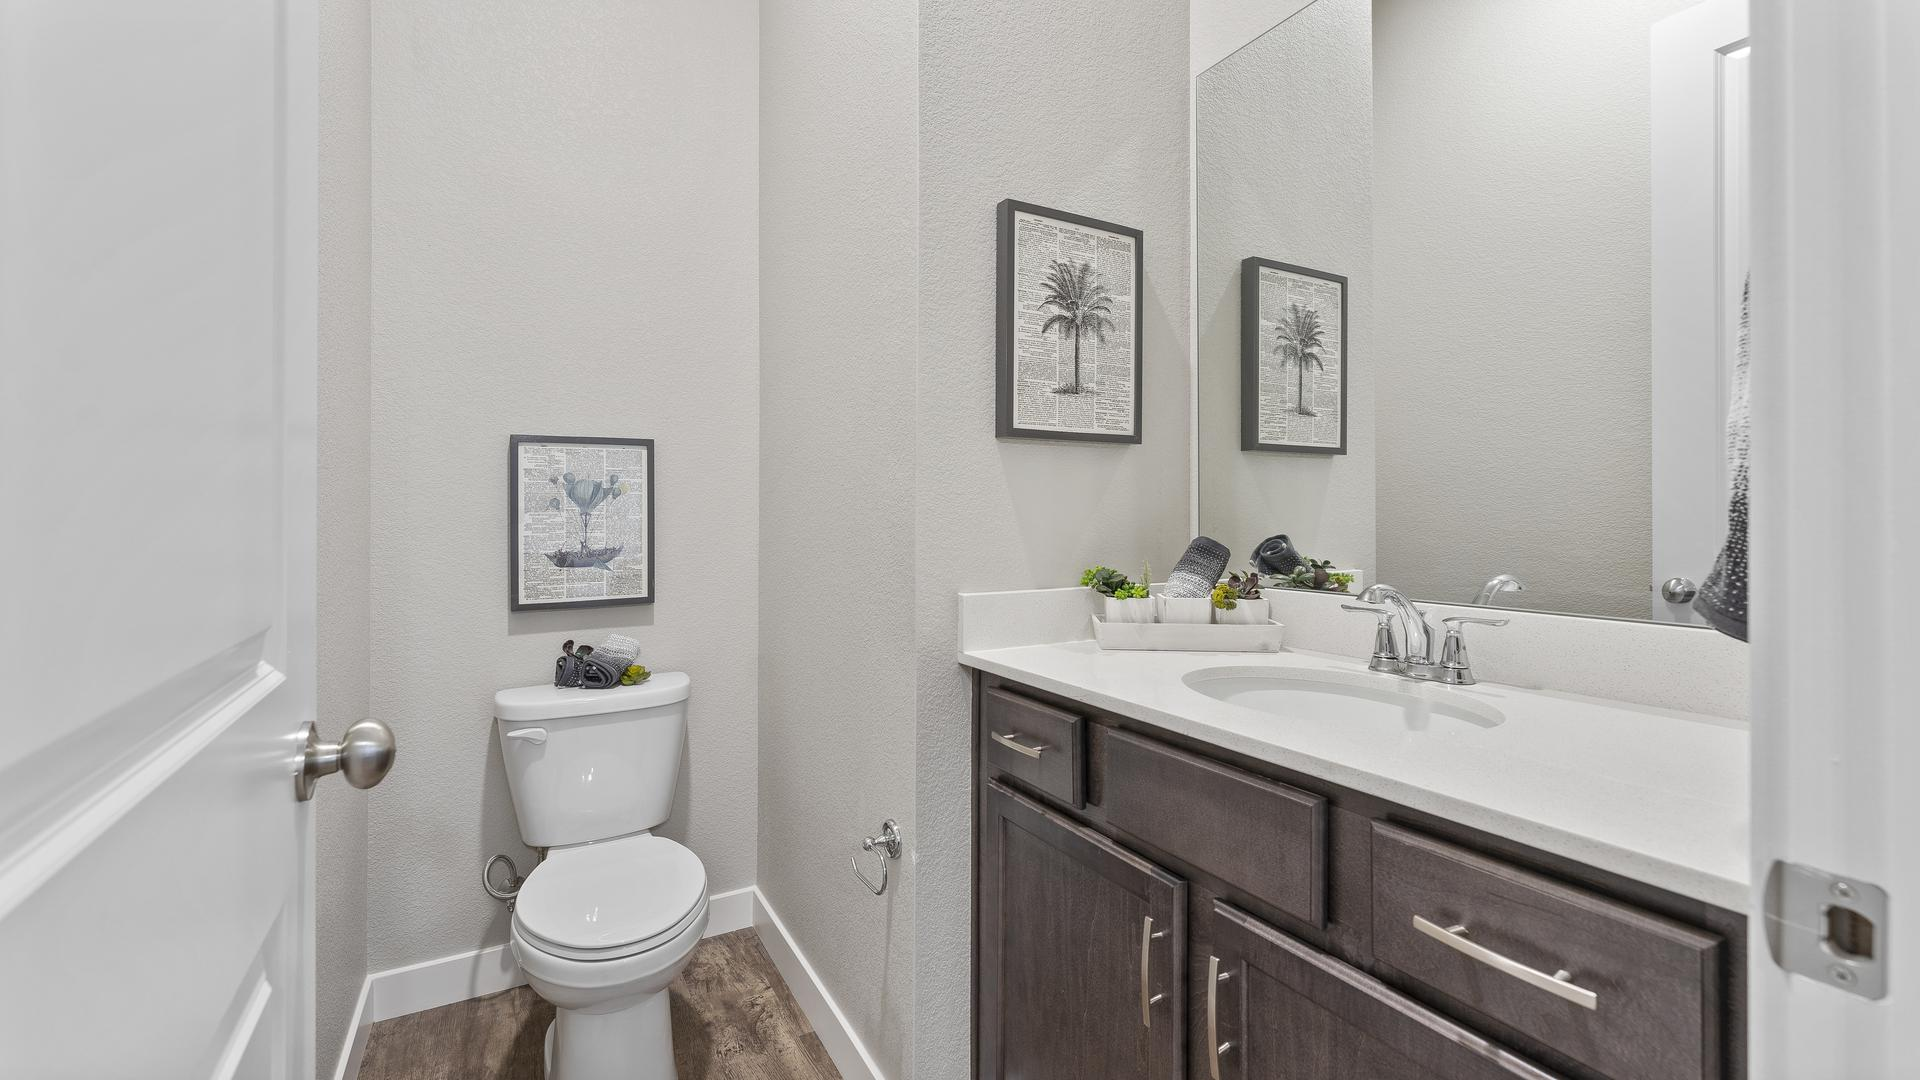 Powder Bath  - Not Actual Home - Finishes Will Vary